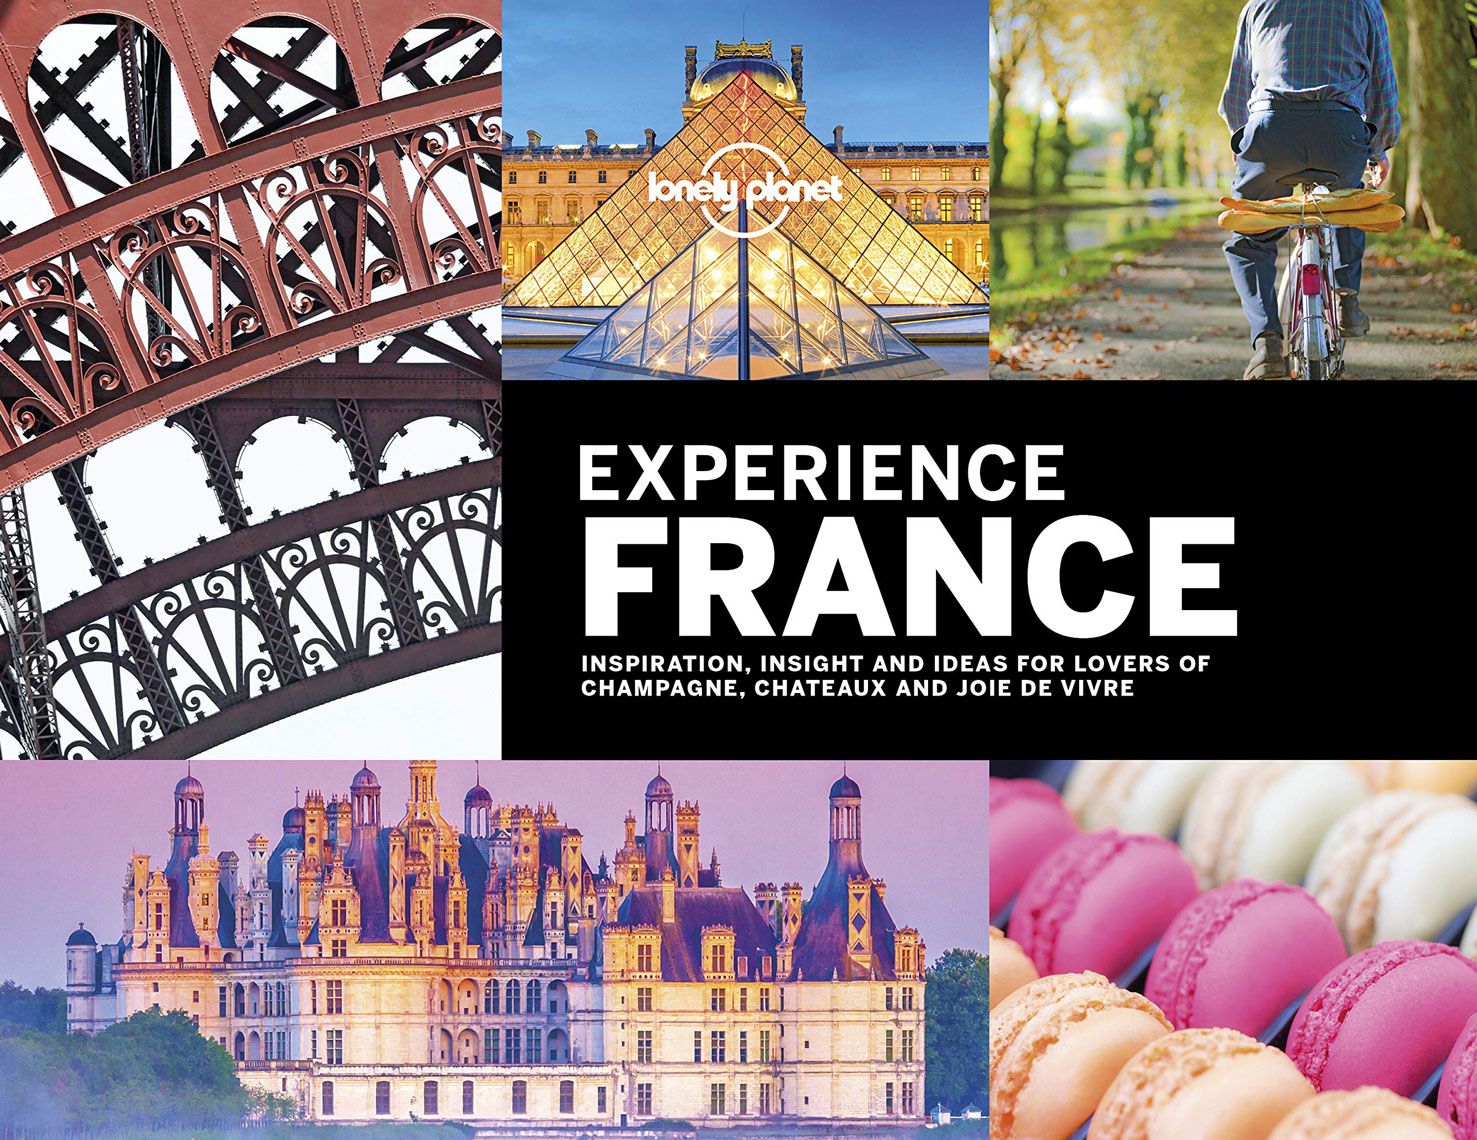 LP_Experience_France_2019_APFb